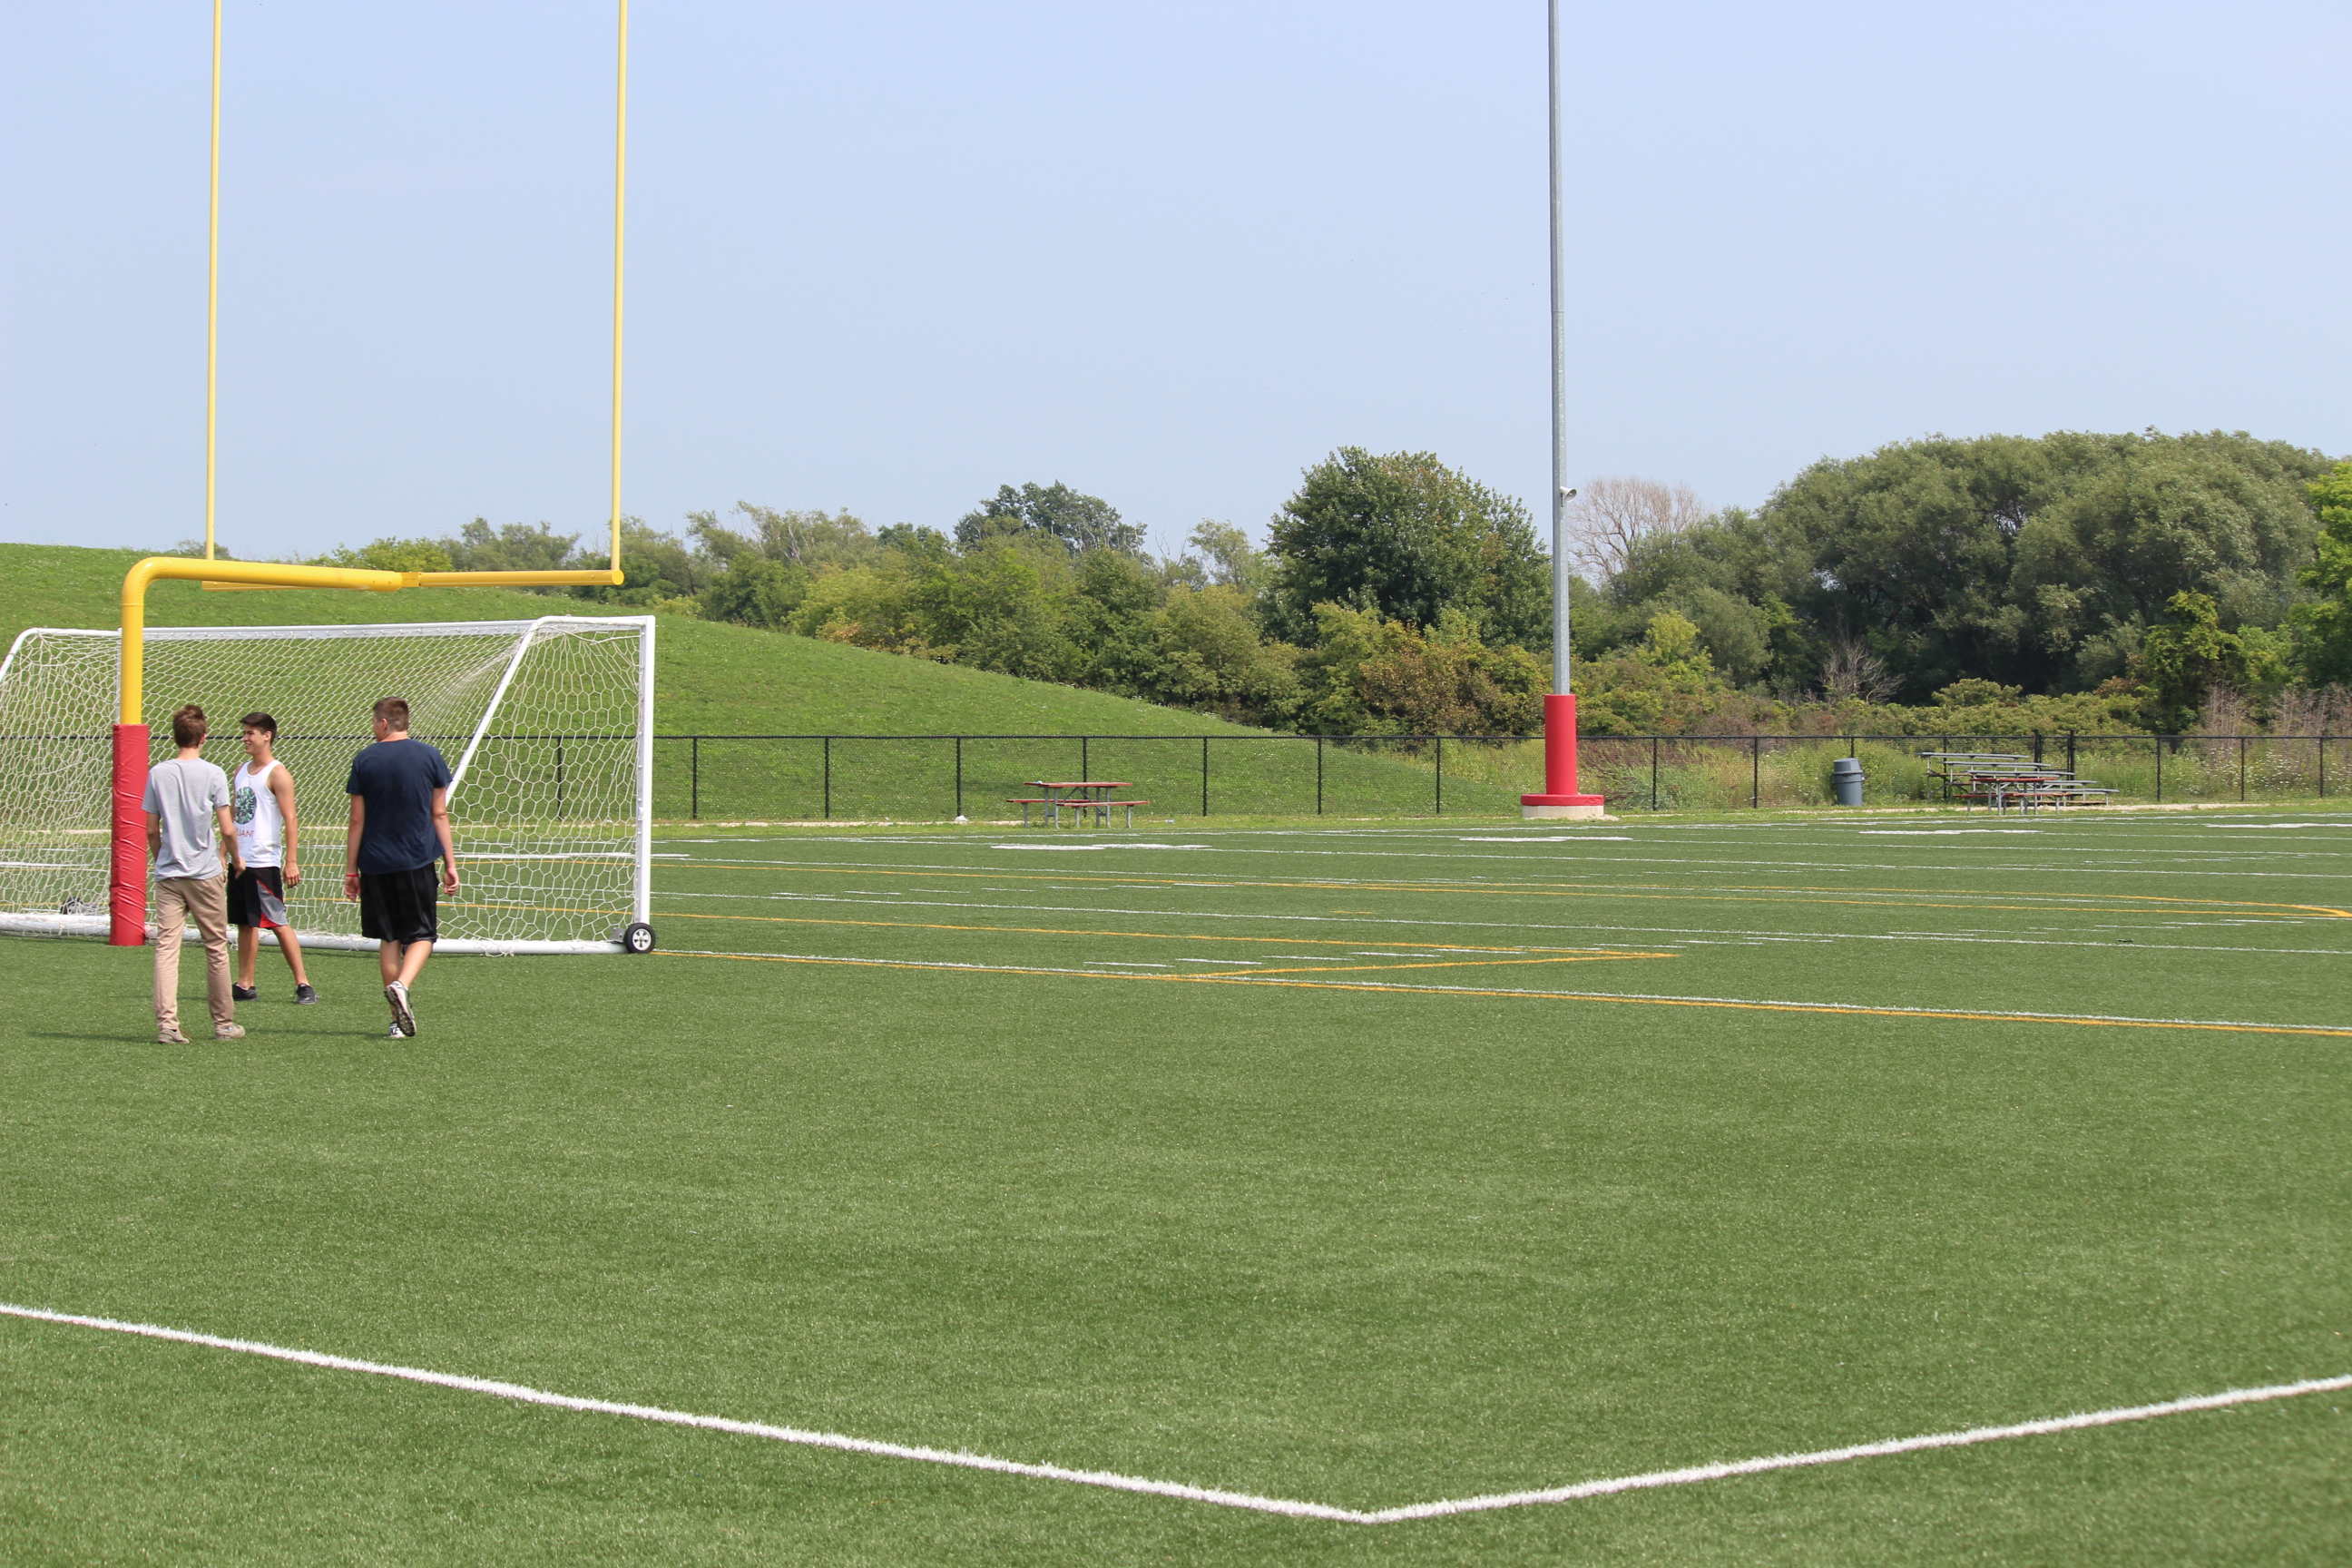 The soccer pitch at the Libro Credit Union Centre in Amherstburg, August 19 2014. (Photo by Adelle Loiselle.)